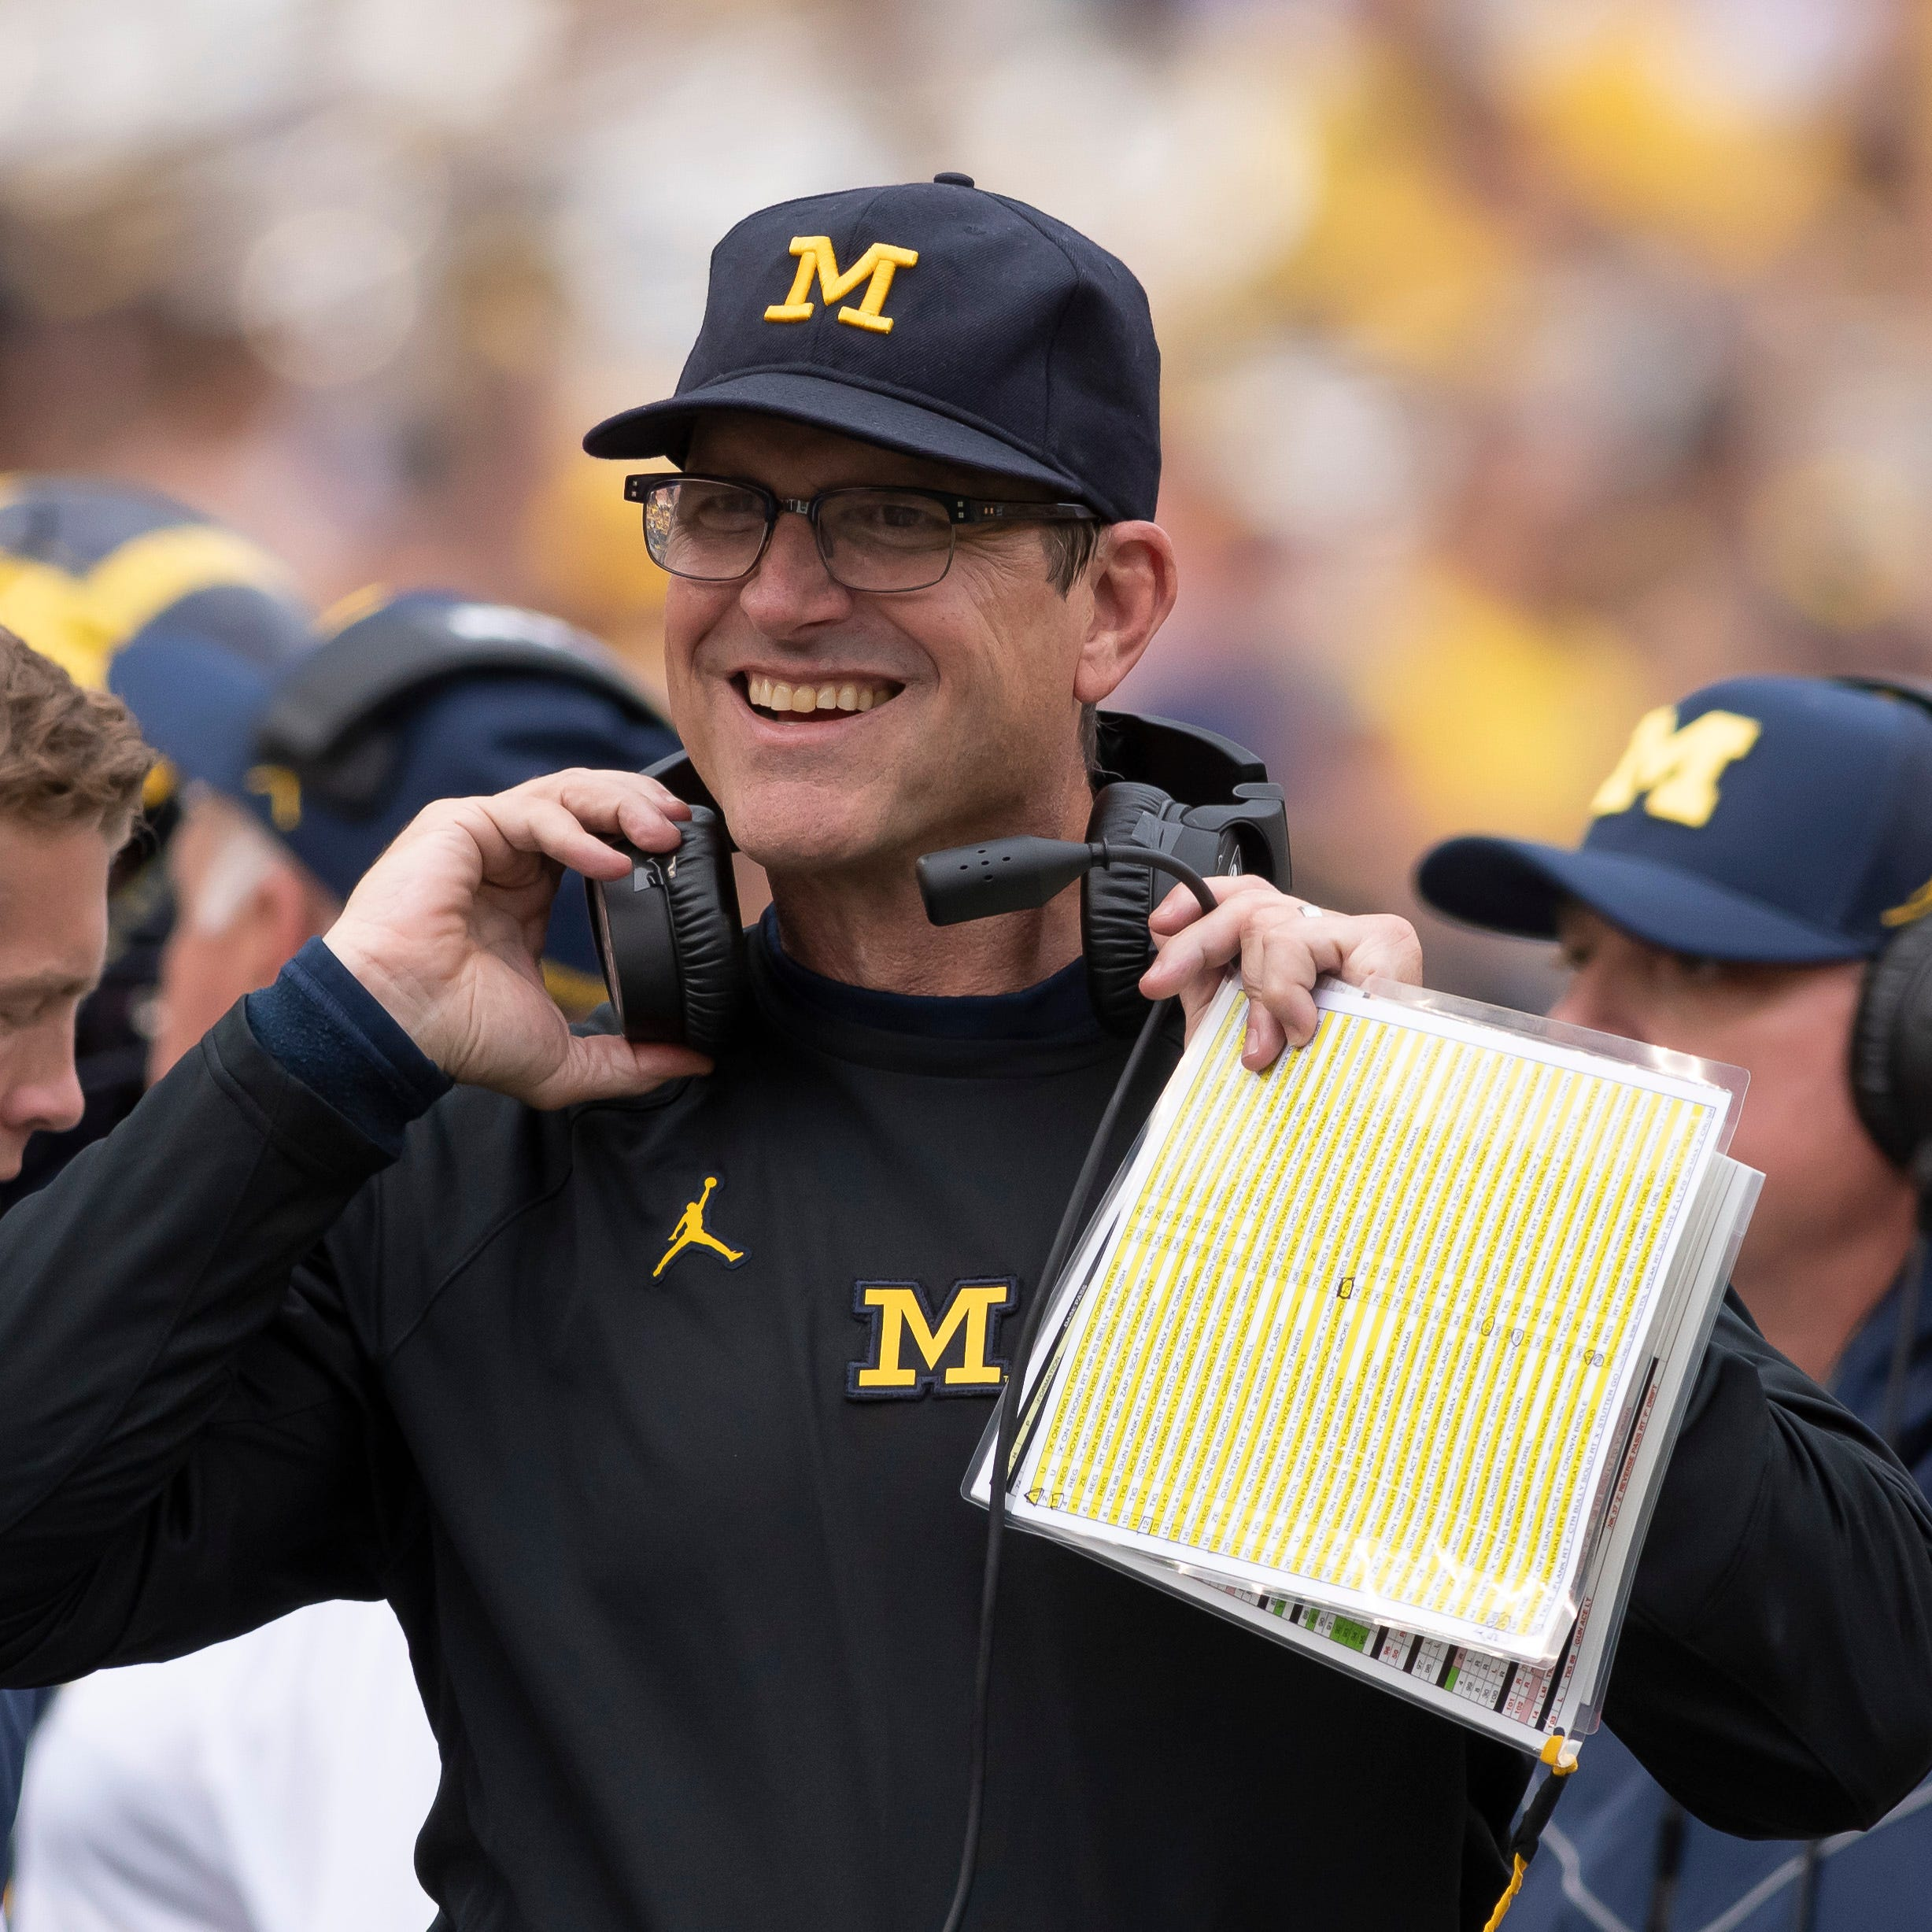 UM's Manuel shoots down rumors: Harbaugh 'will end his career here'